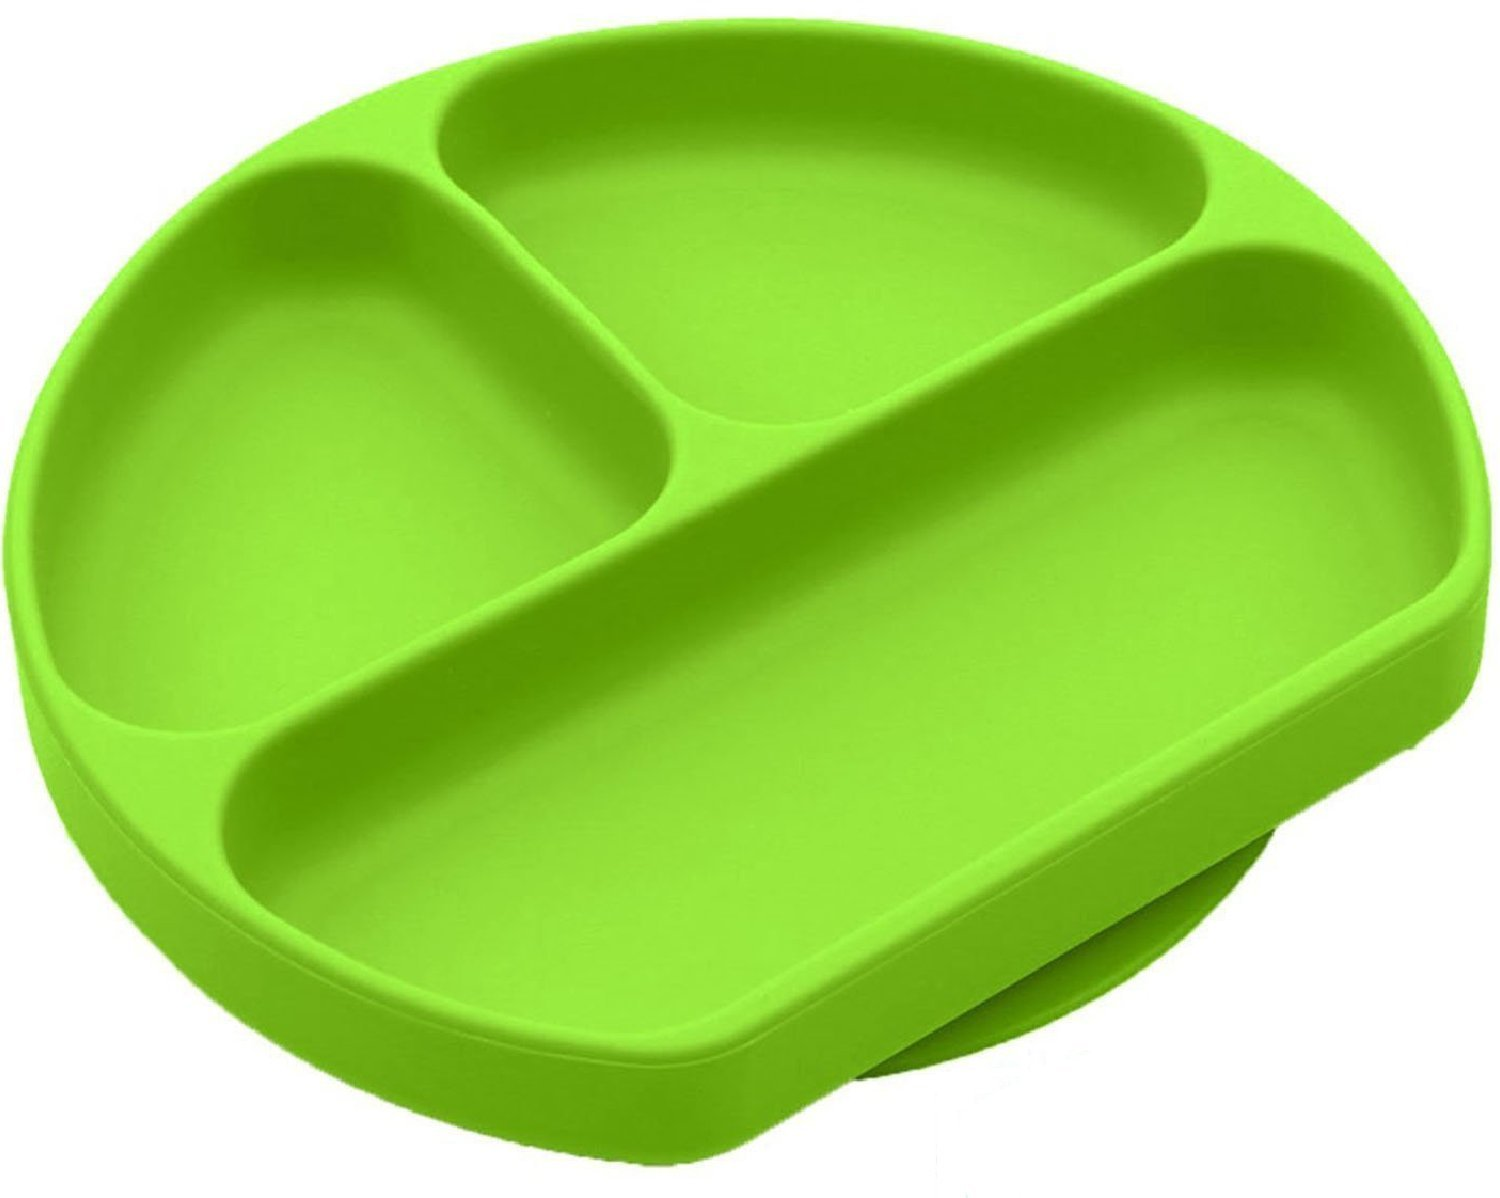 SiliKong Silicone Suction Plate for Toddlers, Fits Most Highchair Trays, BPA Free, Divided Baby Feeding Bowls Dishes for Kids (Green) by SiliKong (Image #1)